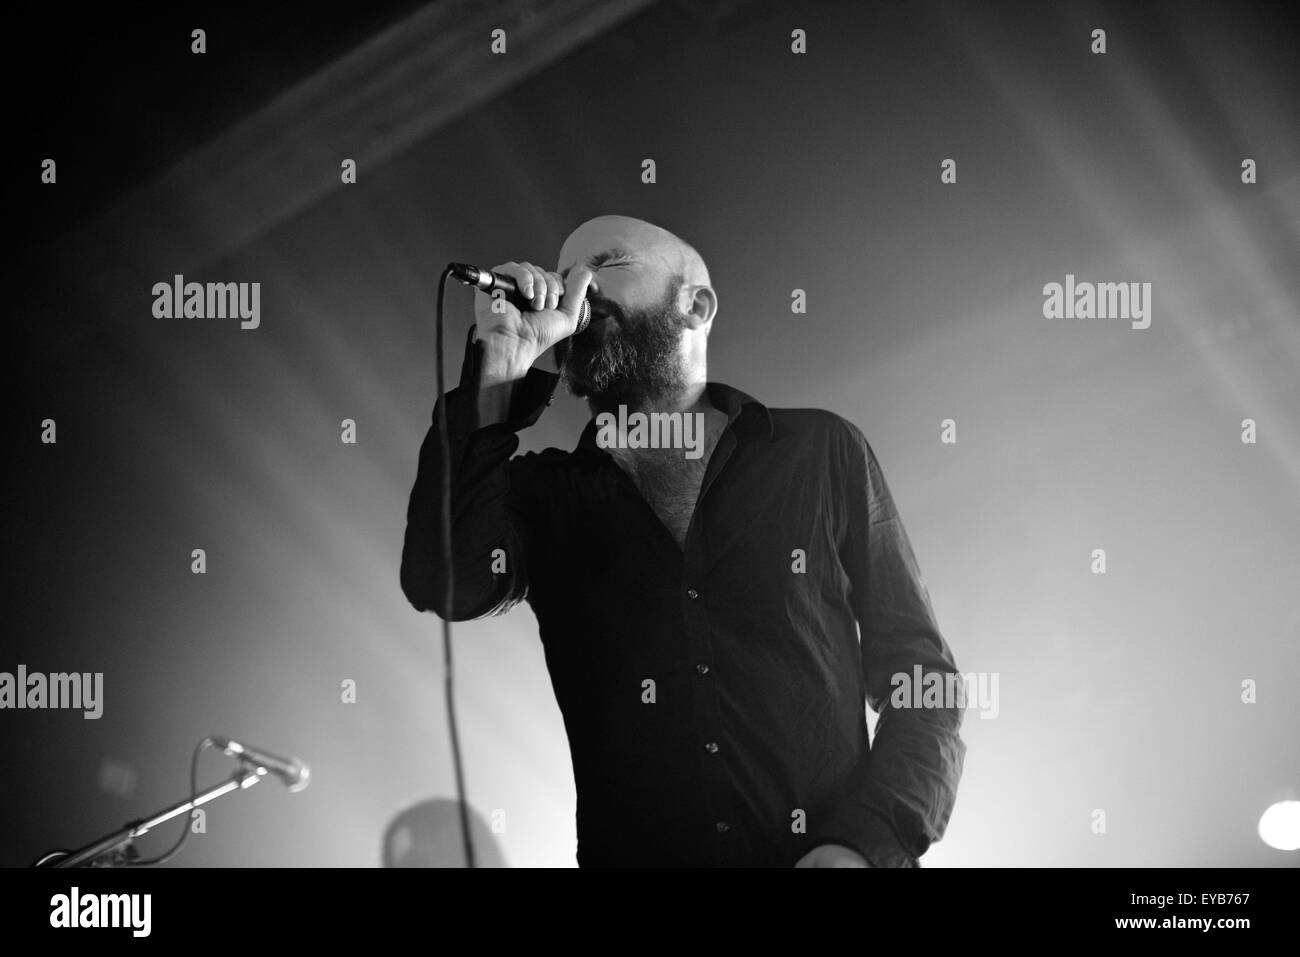 Selig performing live at Grosse Freiheit 36  Featuring: Selig, Jan Plewka Where: Hamburg, Germany When: 24 May 2015 - Stock Image